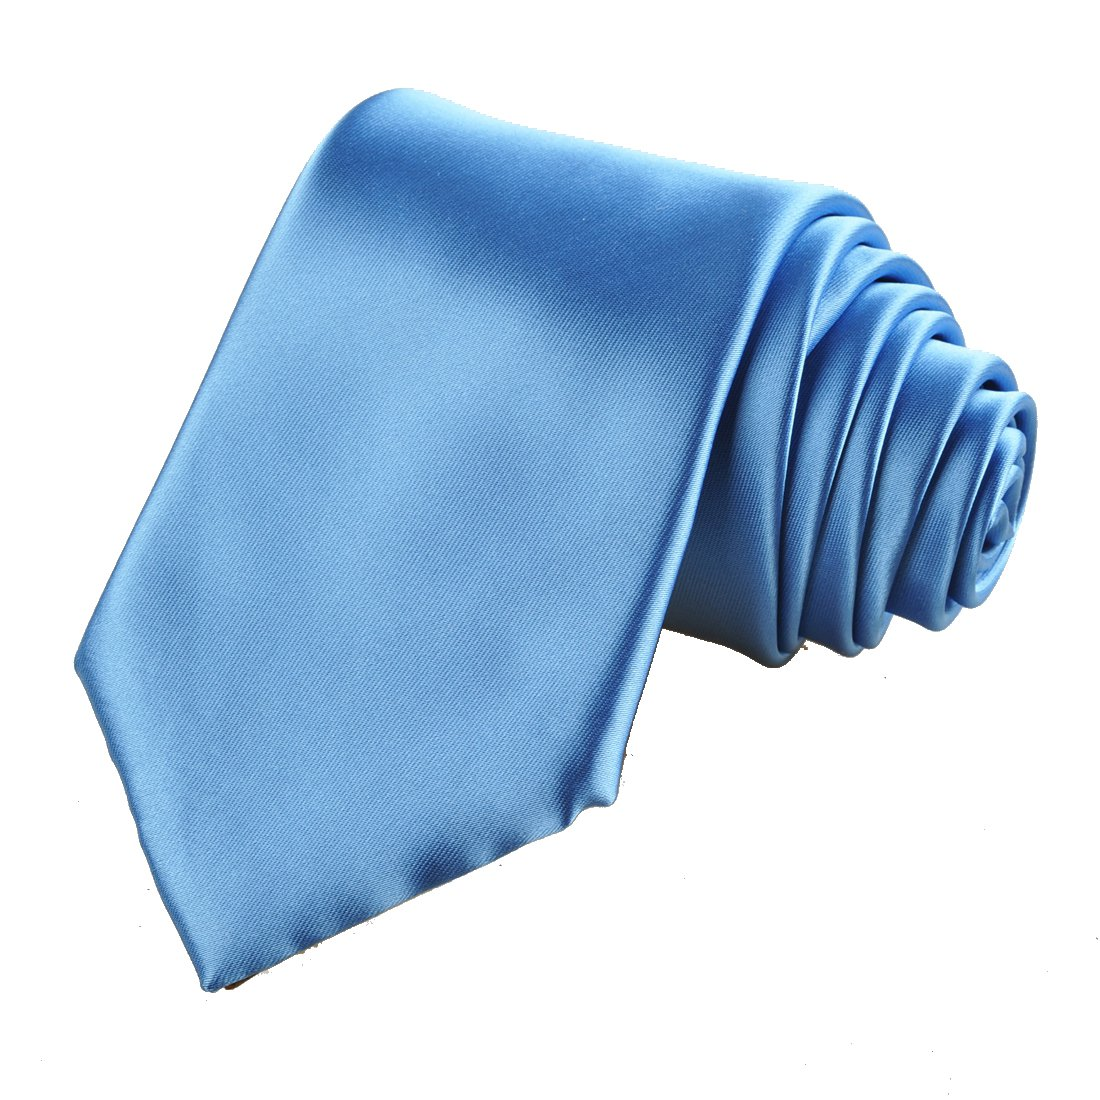 KissTies Solid Satin Tie Pure Color Necktie Mens Ties + Gift Box KT1016-FBA